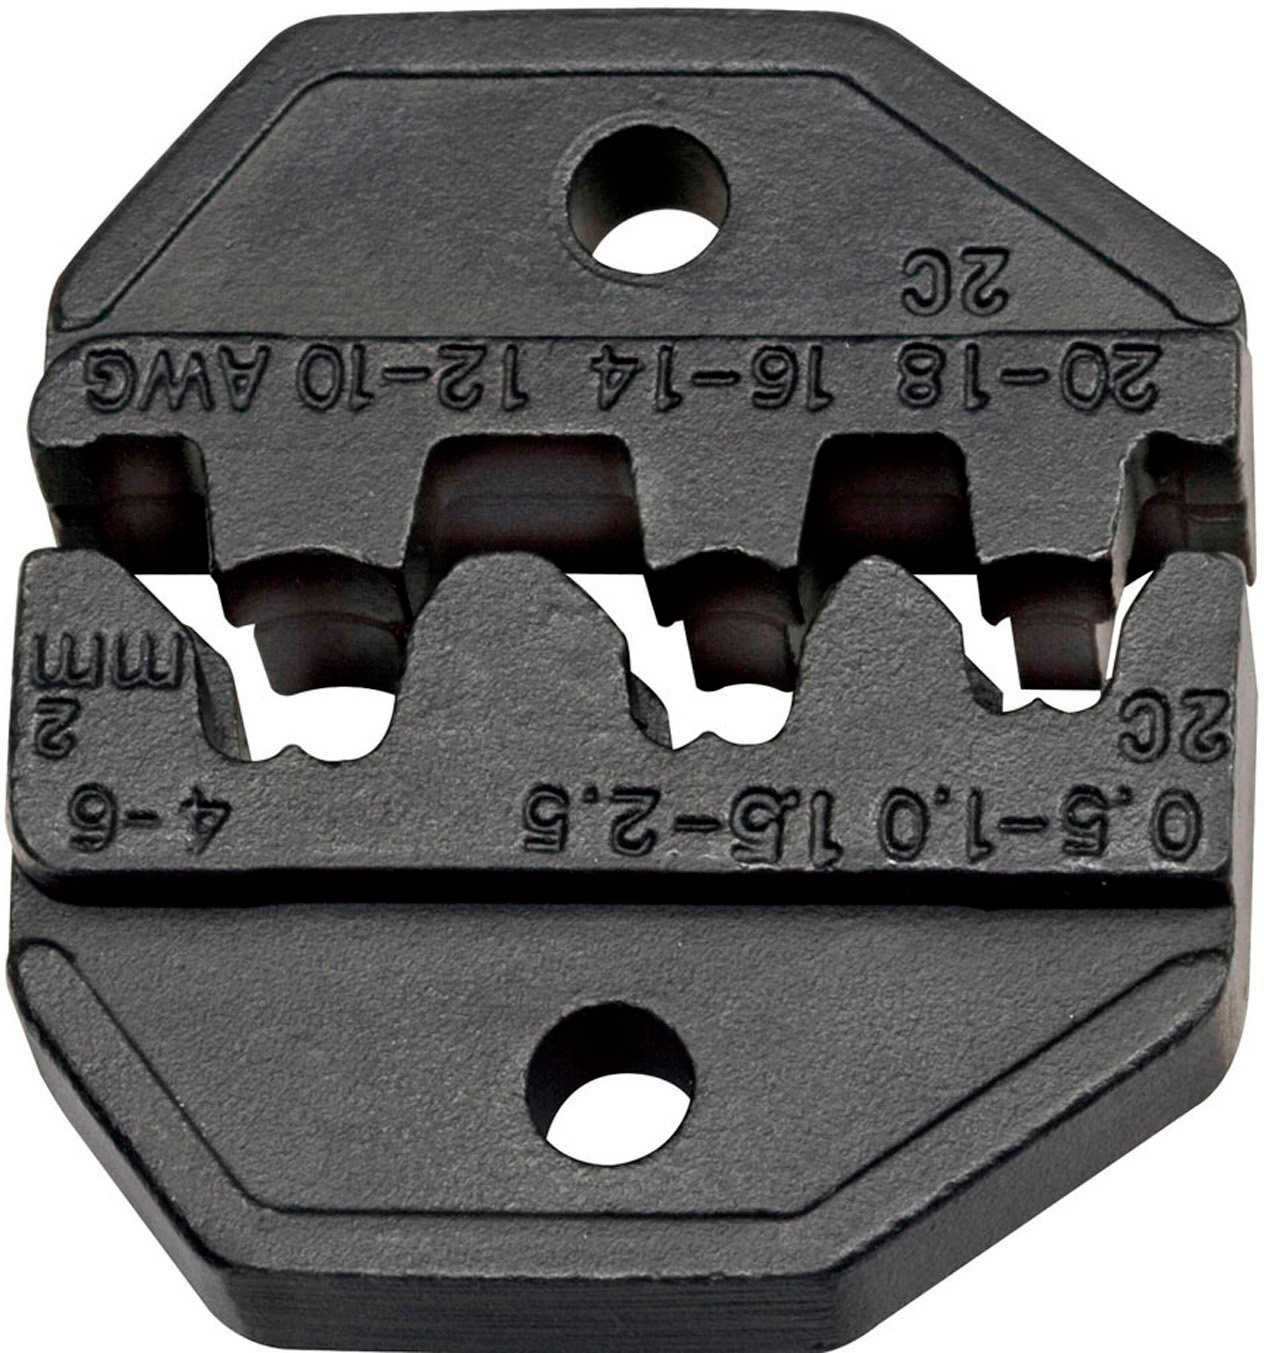 Klein Tools VDV205-036 Die Set for VDV200-010 VDV205-036